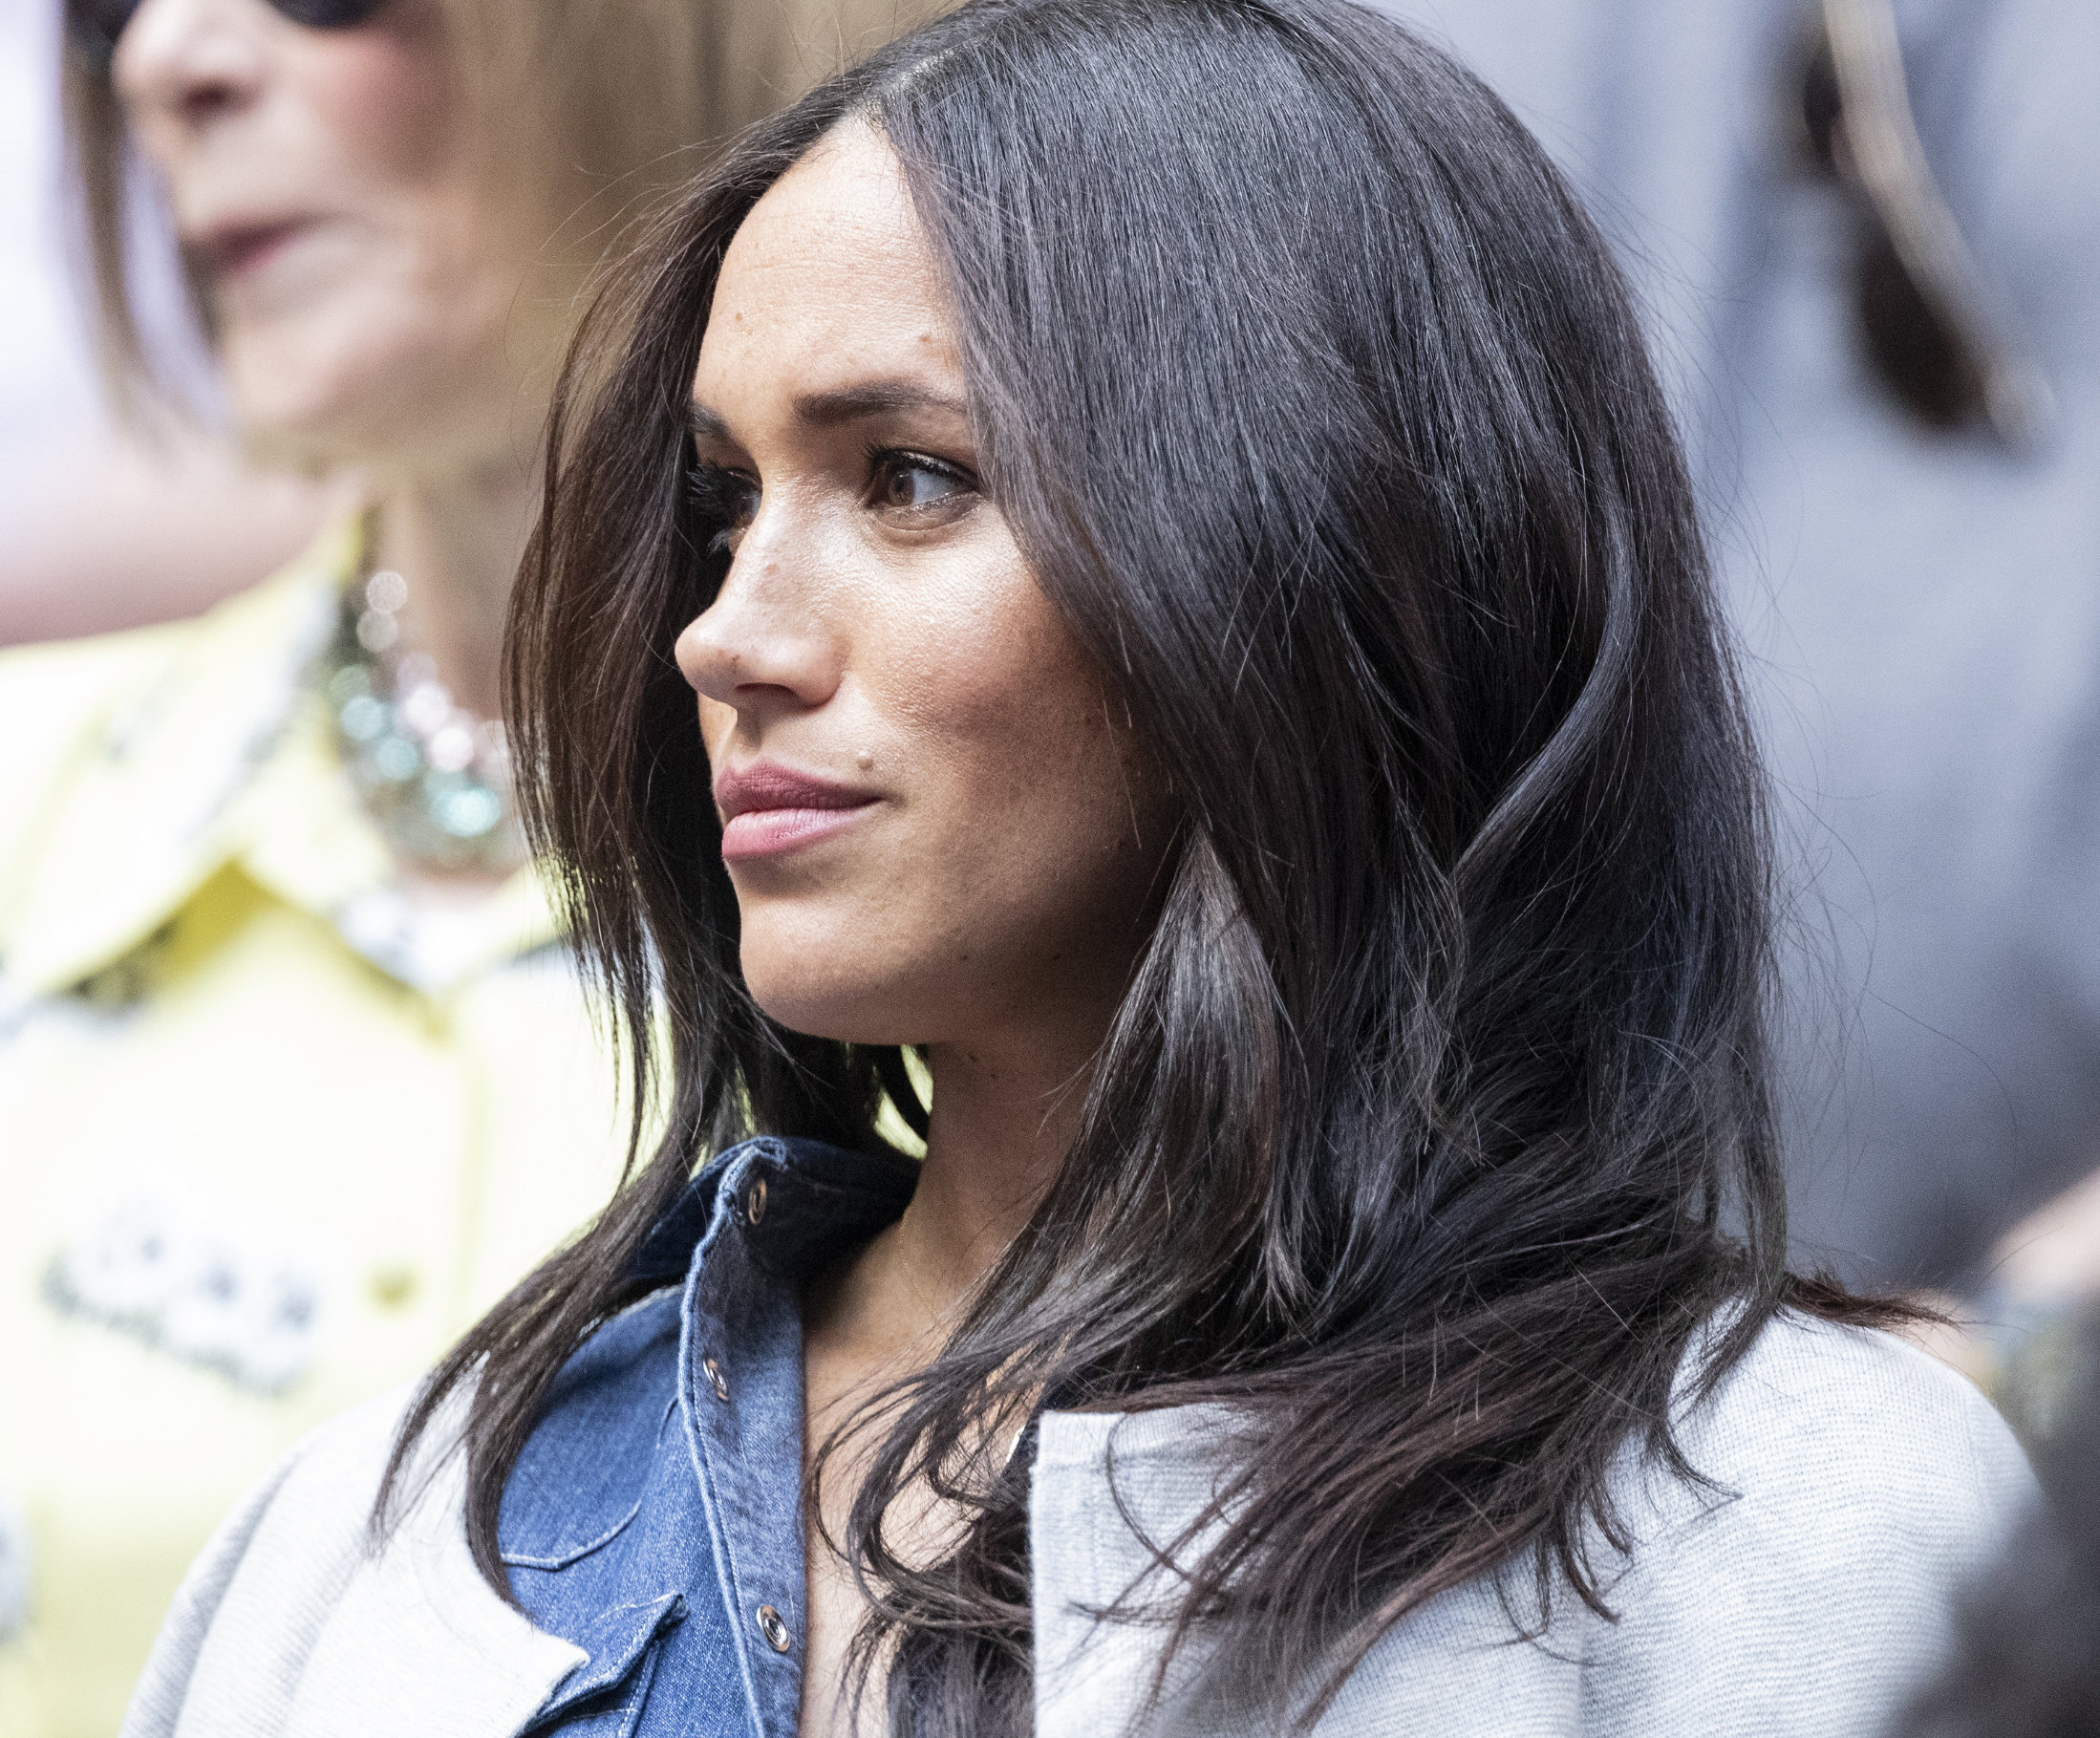 Duchess of Sussex Meghan Markle attends womens final match at US Open Championships between Serena Williams (USA) and Bianca Andreescu (Canada) at Billie Jean King. 07 Sep 2019, Image: 469676348, License: Rights-managed, Restrictions: NO Argentina, Australia, Bolivia, Brazil, Chile, Colombia, Finland, France, Georgia, Hungary, Japan, Mexico, Netherlands, New Zealand, Poland, Romania, Russia, South Africa, Uruguay, Model Release: no, Credit line: ZUMAPRESS.com / MEGA / The Mega Agency / Profimedia